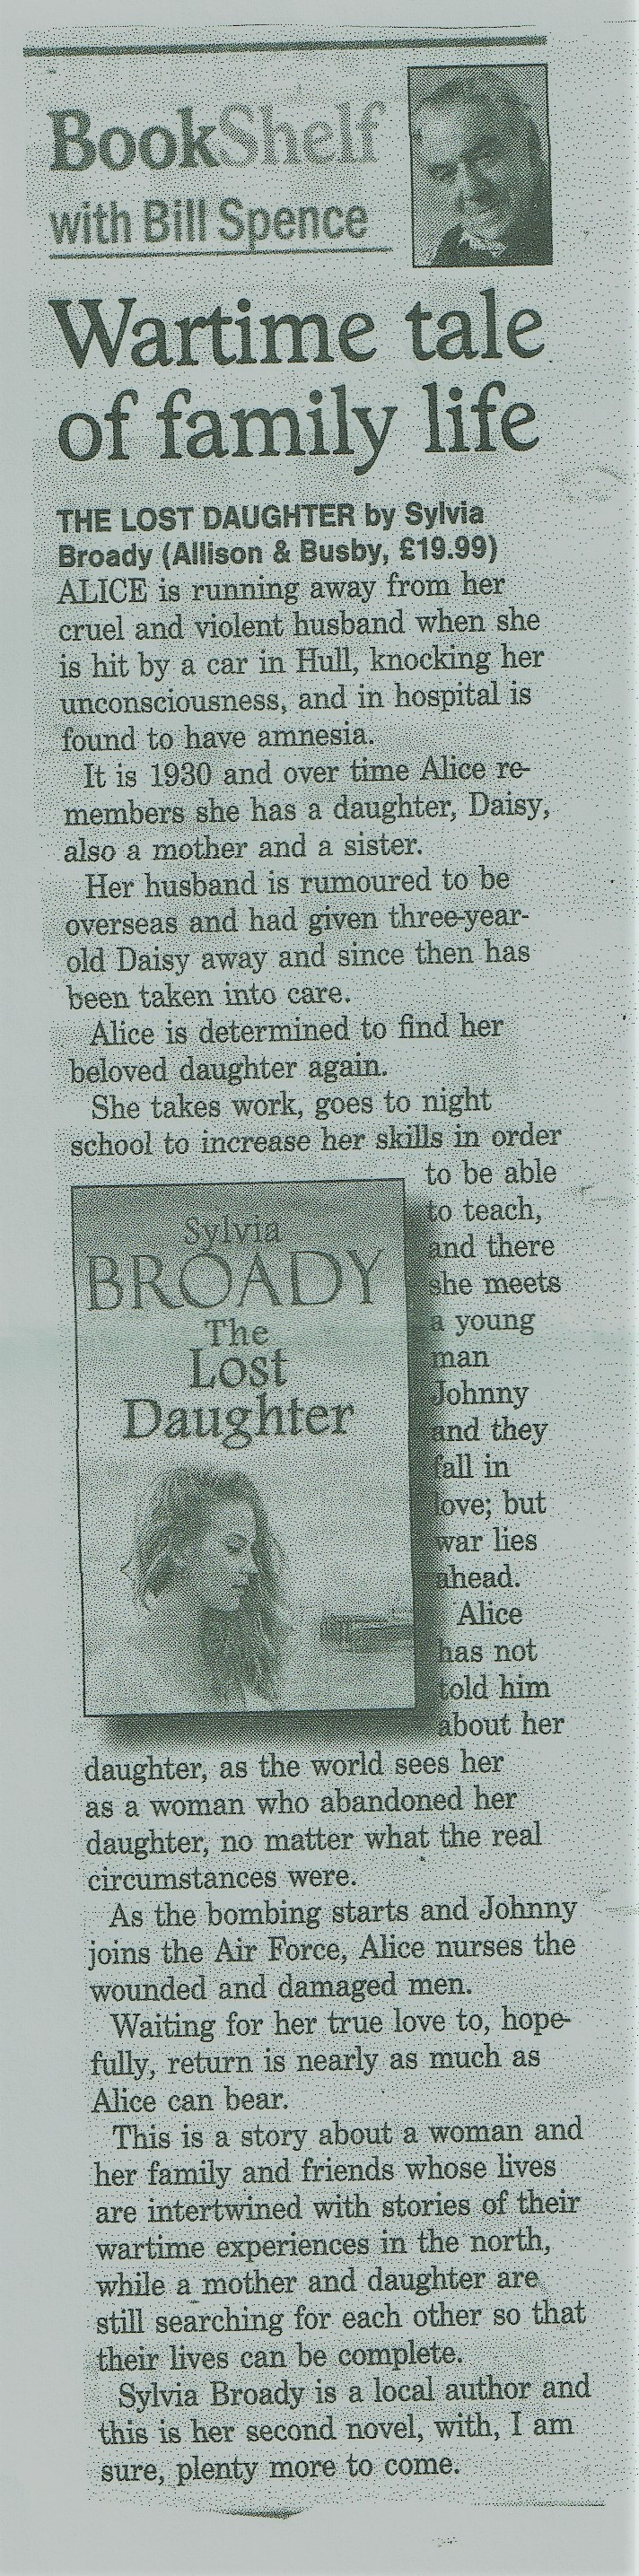 1 REVIEW LOST DAUGHTER